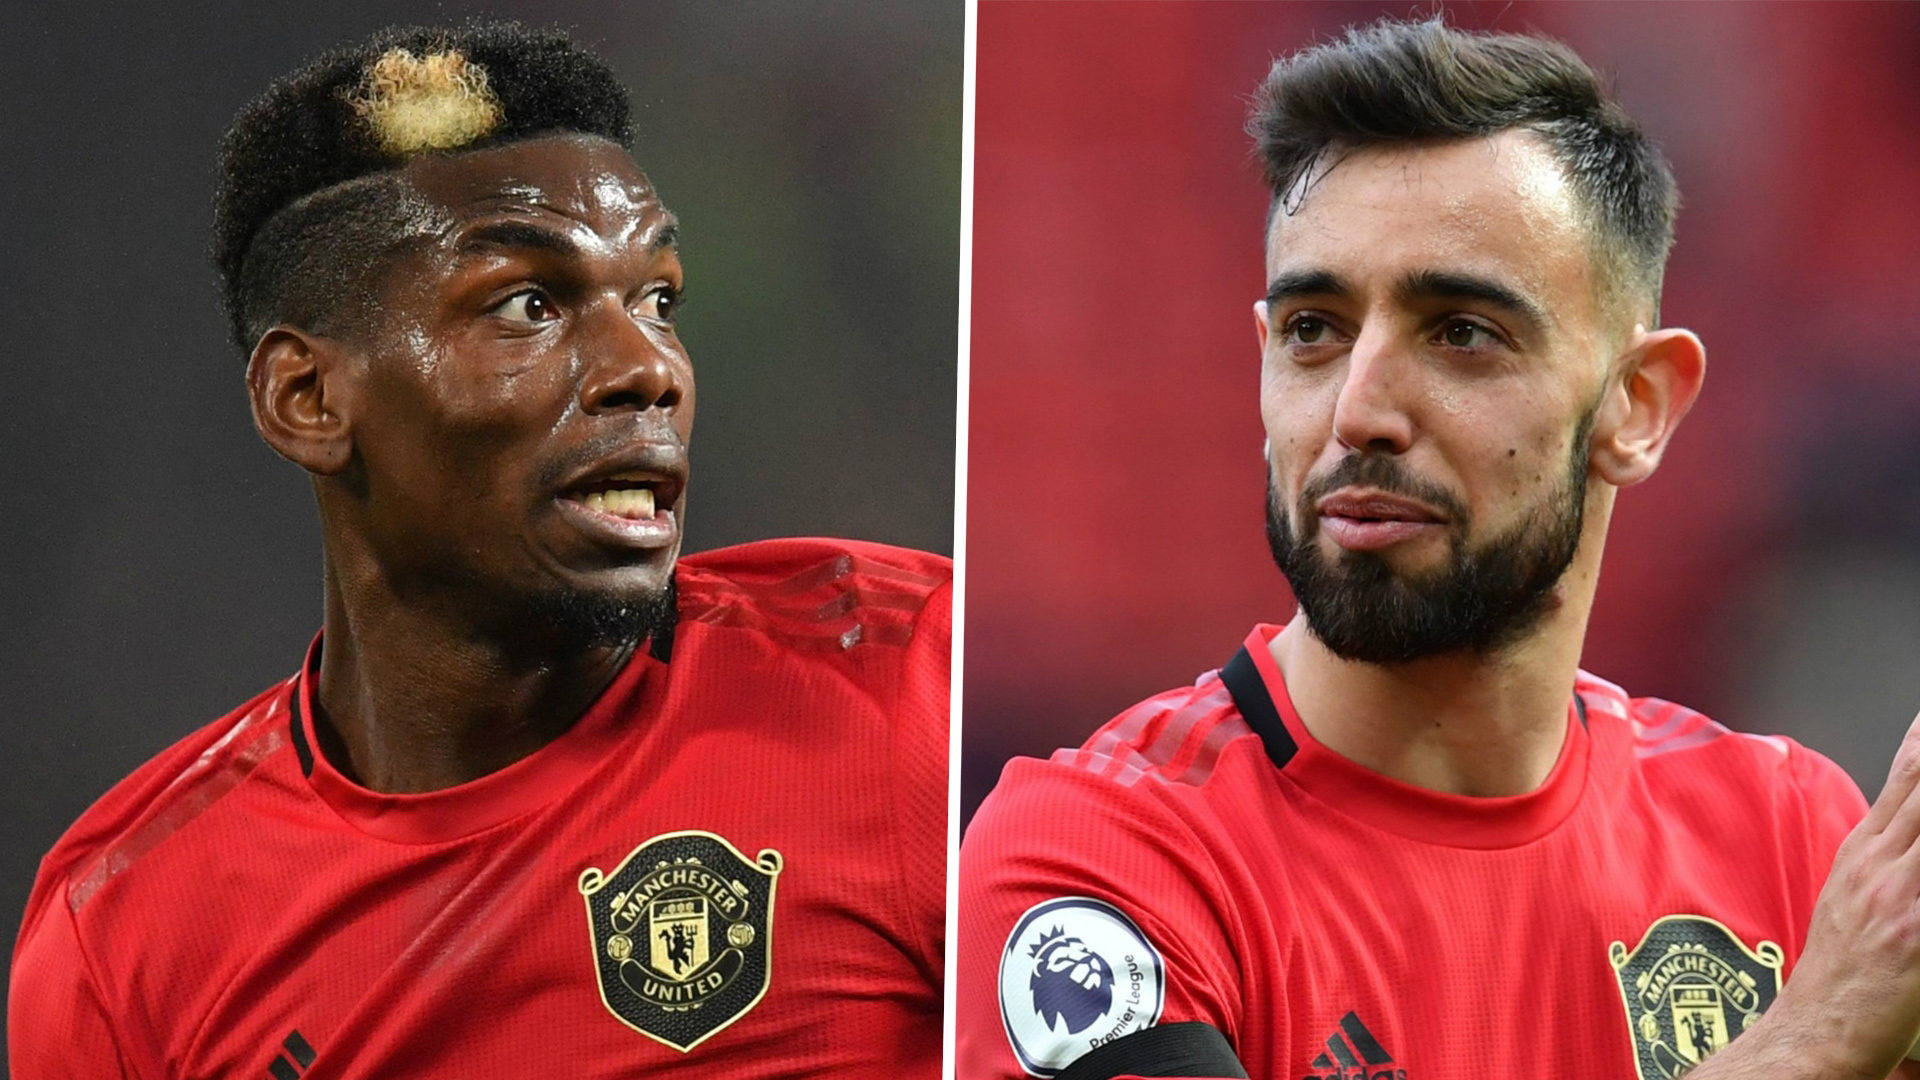 'To play alongside Pogba will be amazing' - Fernandes excited to link up with World Cup winner at Man Utd